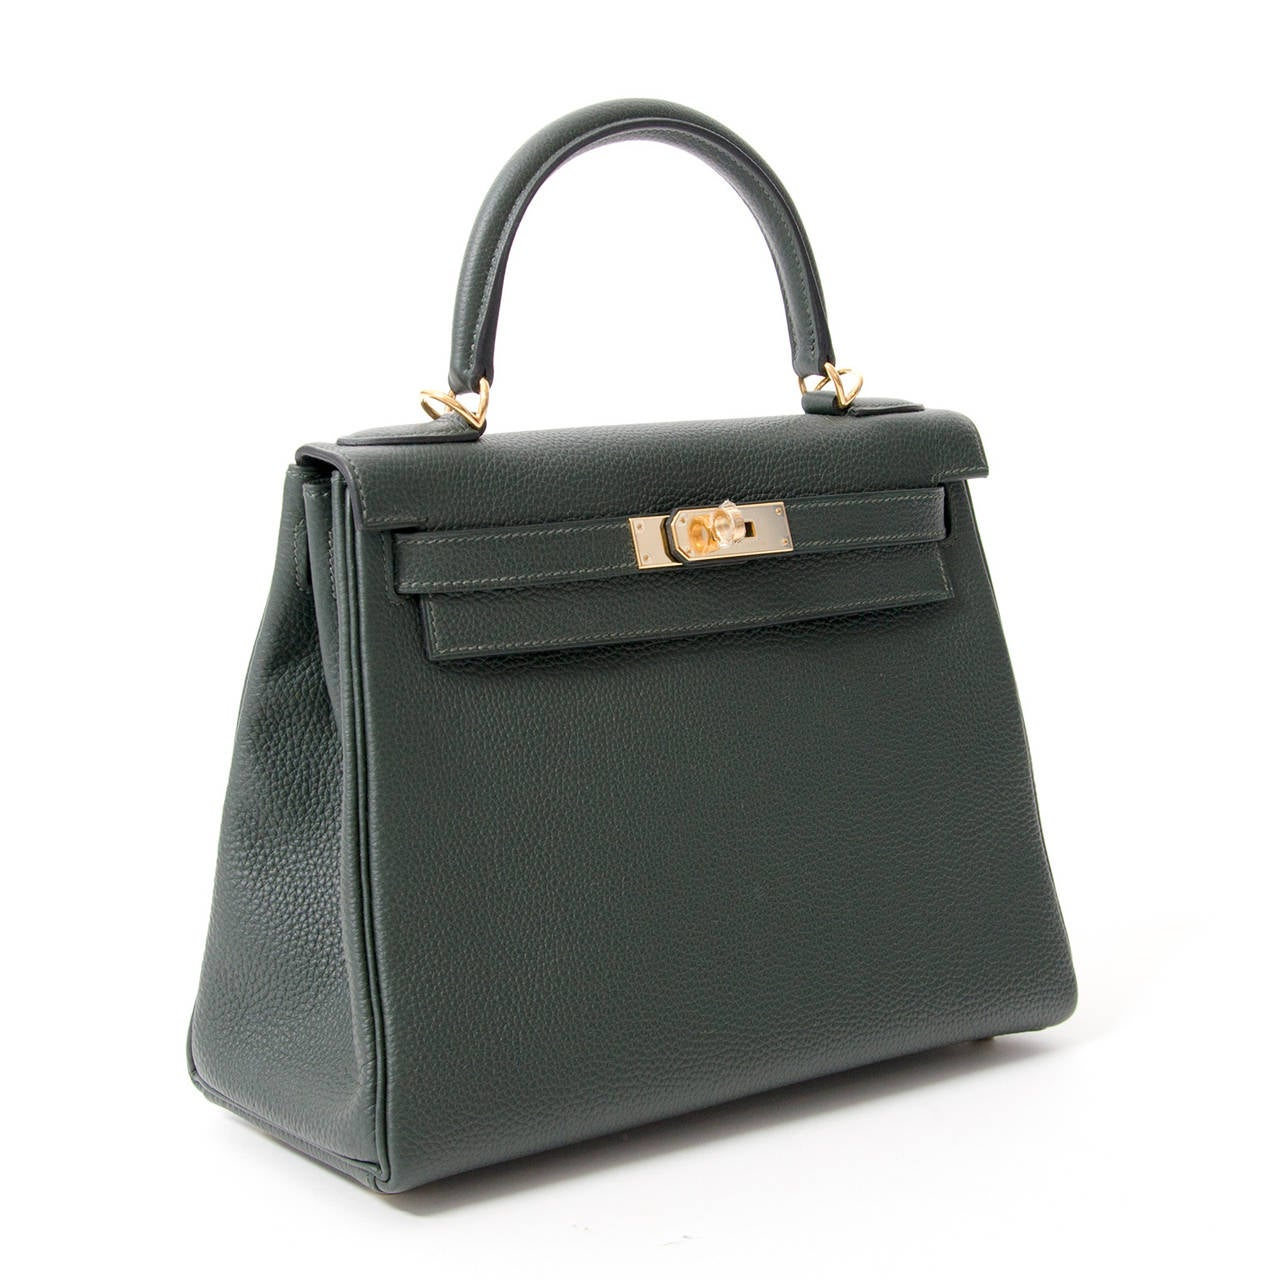 birkin bag buy - BRAND NEW Herm��s Kelly Bag 28 Togo Vert Fonce GHW With Shoulder ...